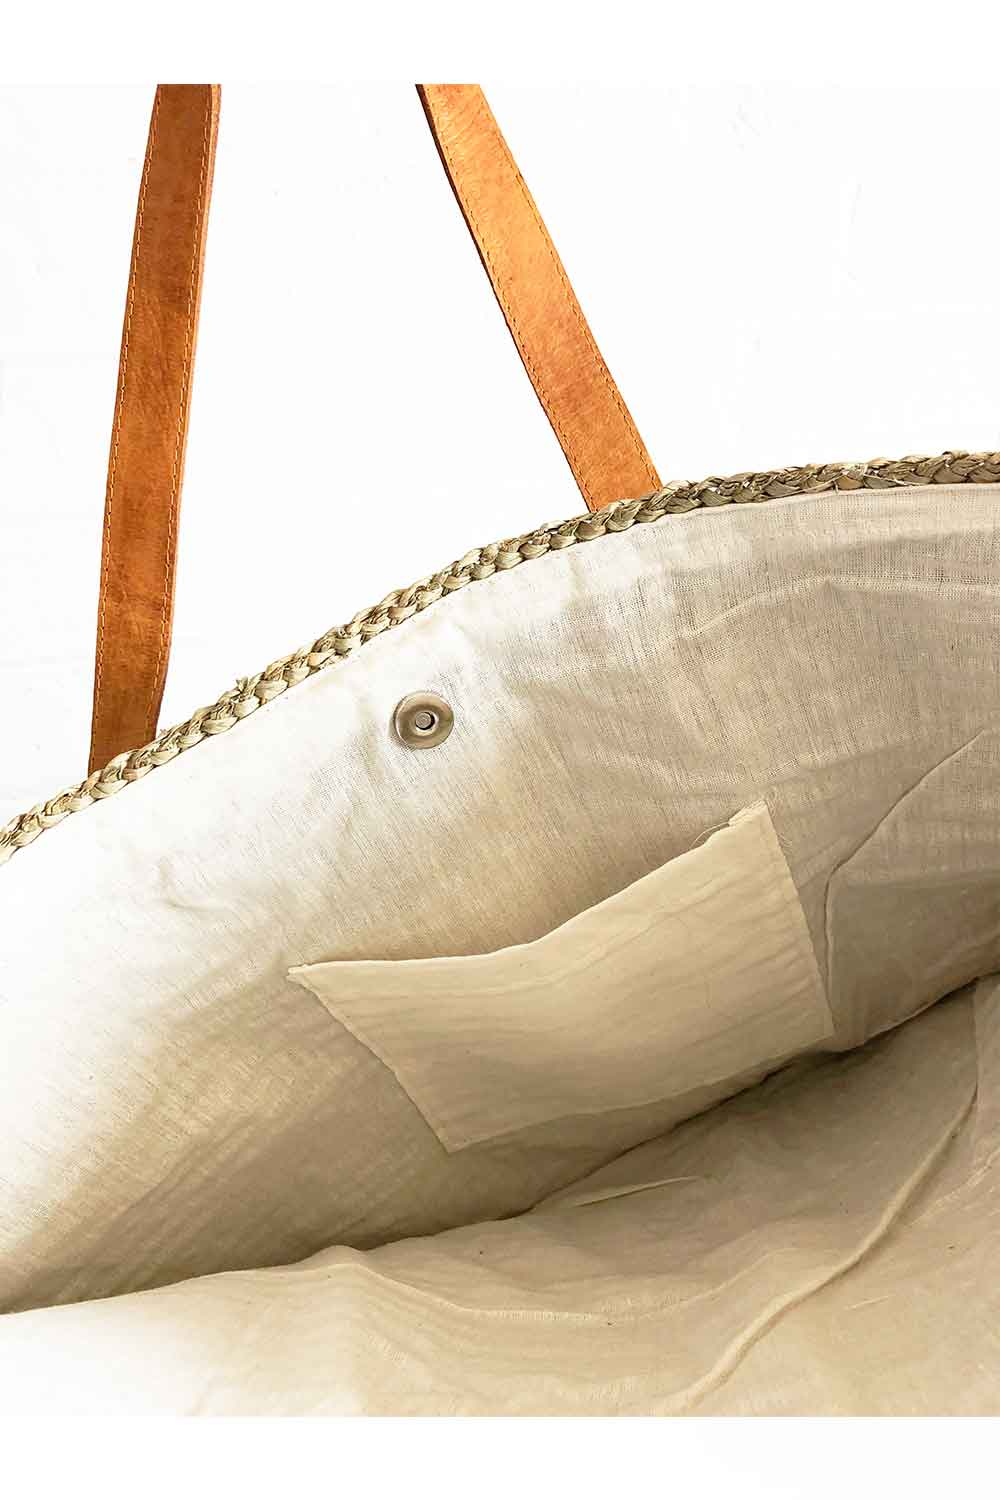 Sanbasics Basket Weave Beach Bag with Leather Strap